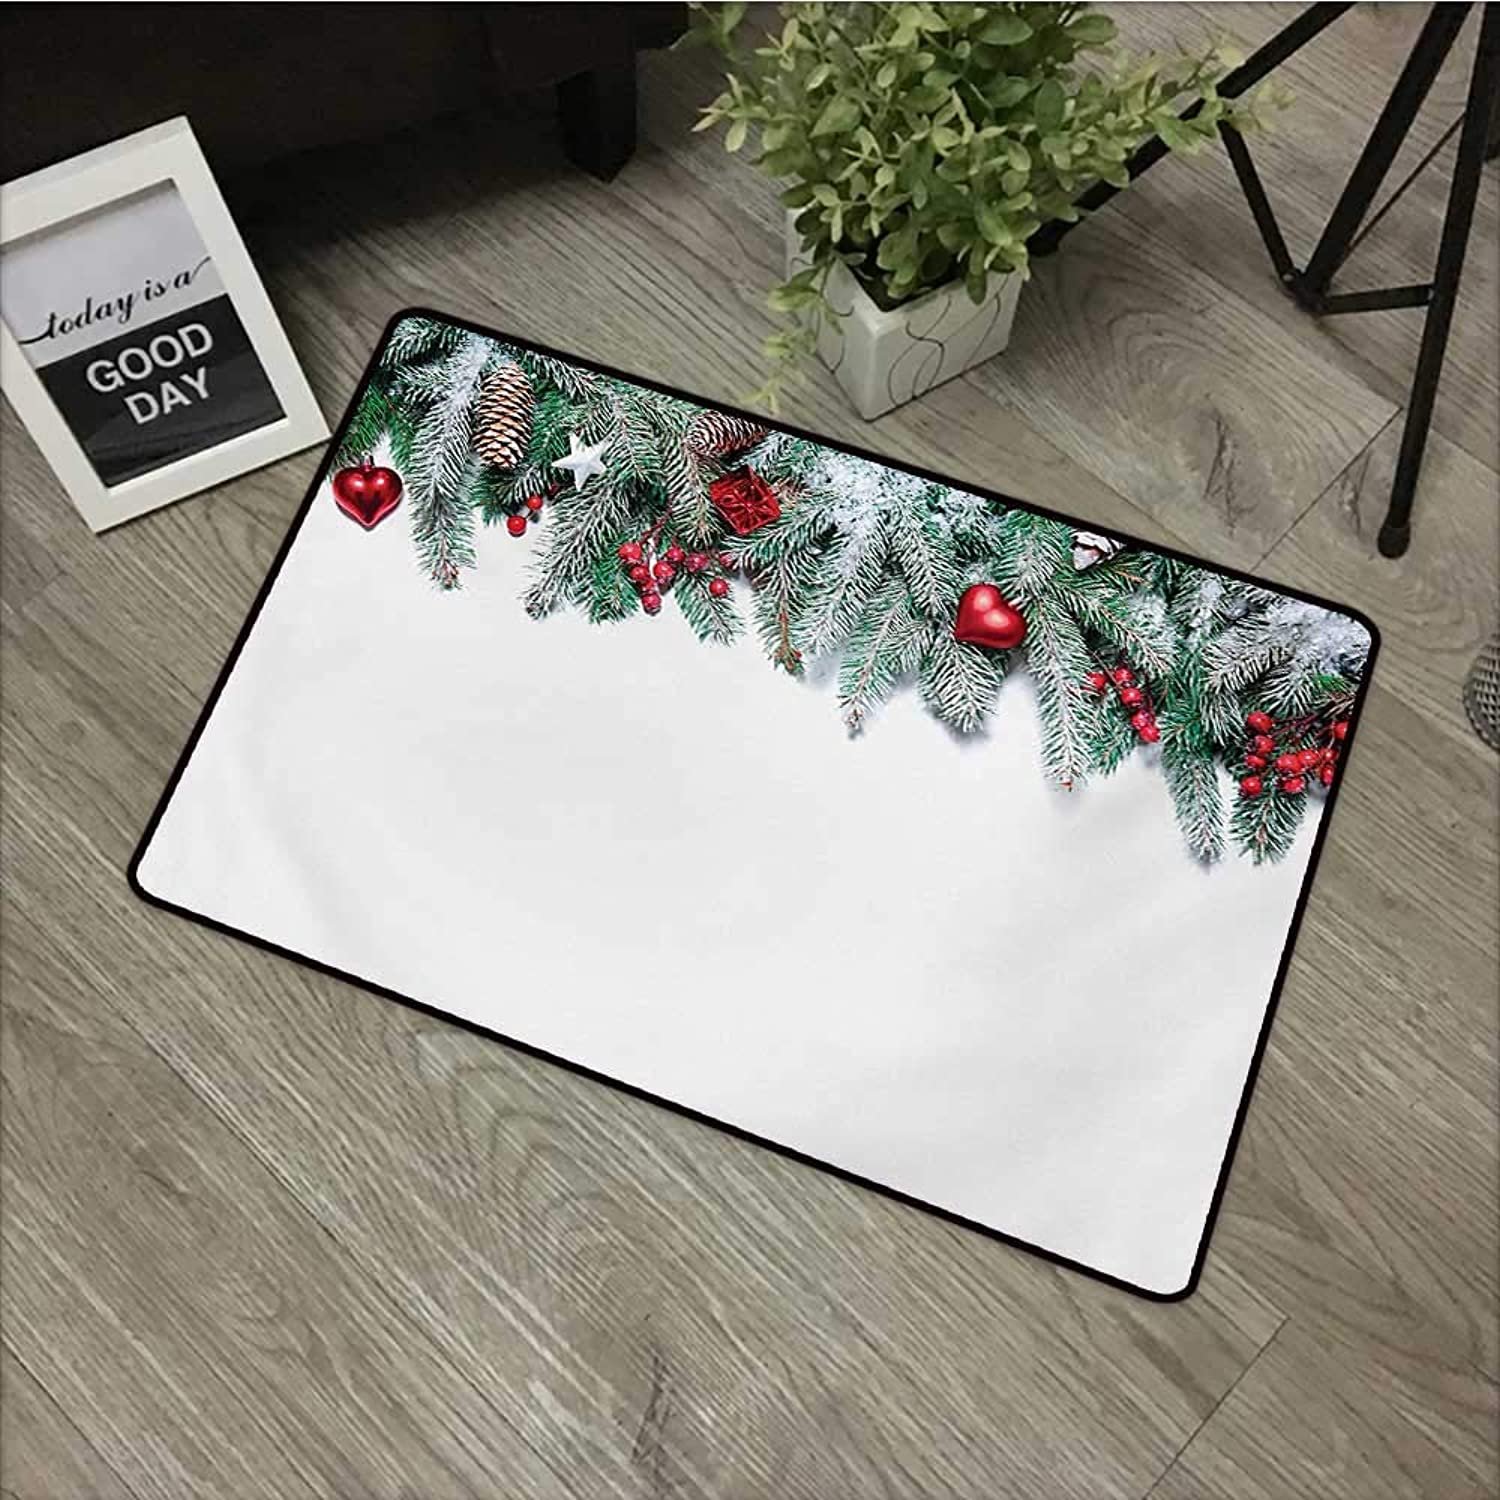 Printed Door mat W35 x L59 INCH Christmas,Snowy Xmas Branch with Vivid Baubles Stars Berries Cones and Mistletoe Yule Image,Green Red with Non-Slip Backing Door Mat Carpet